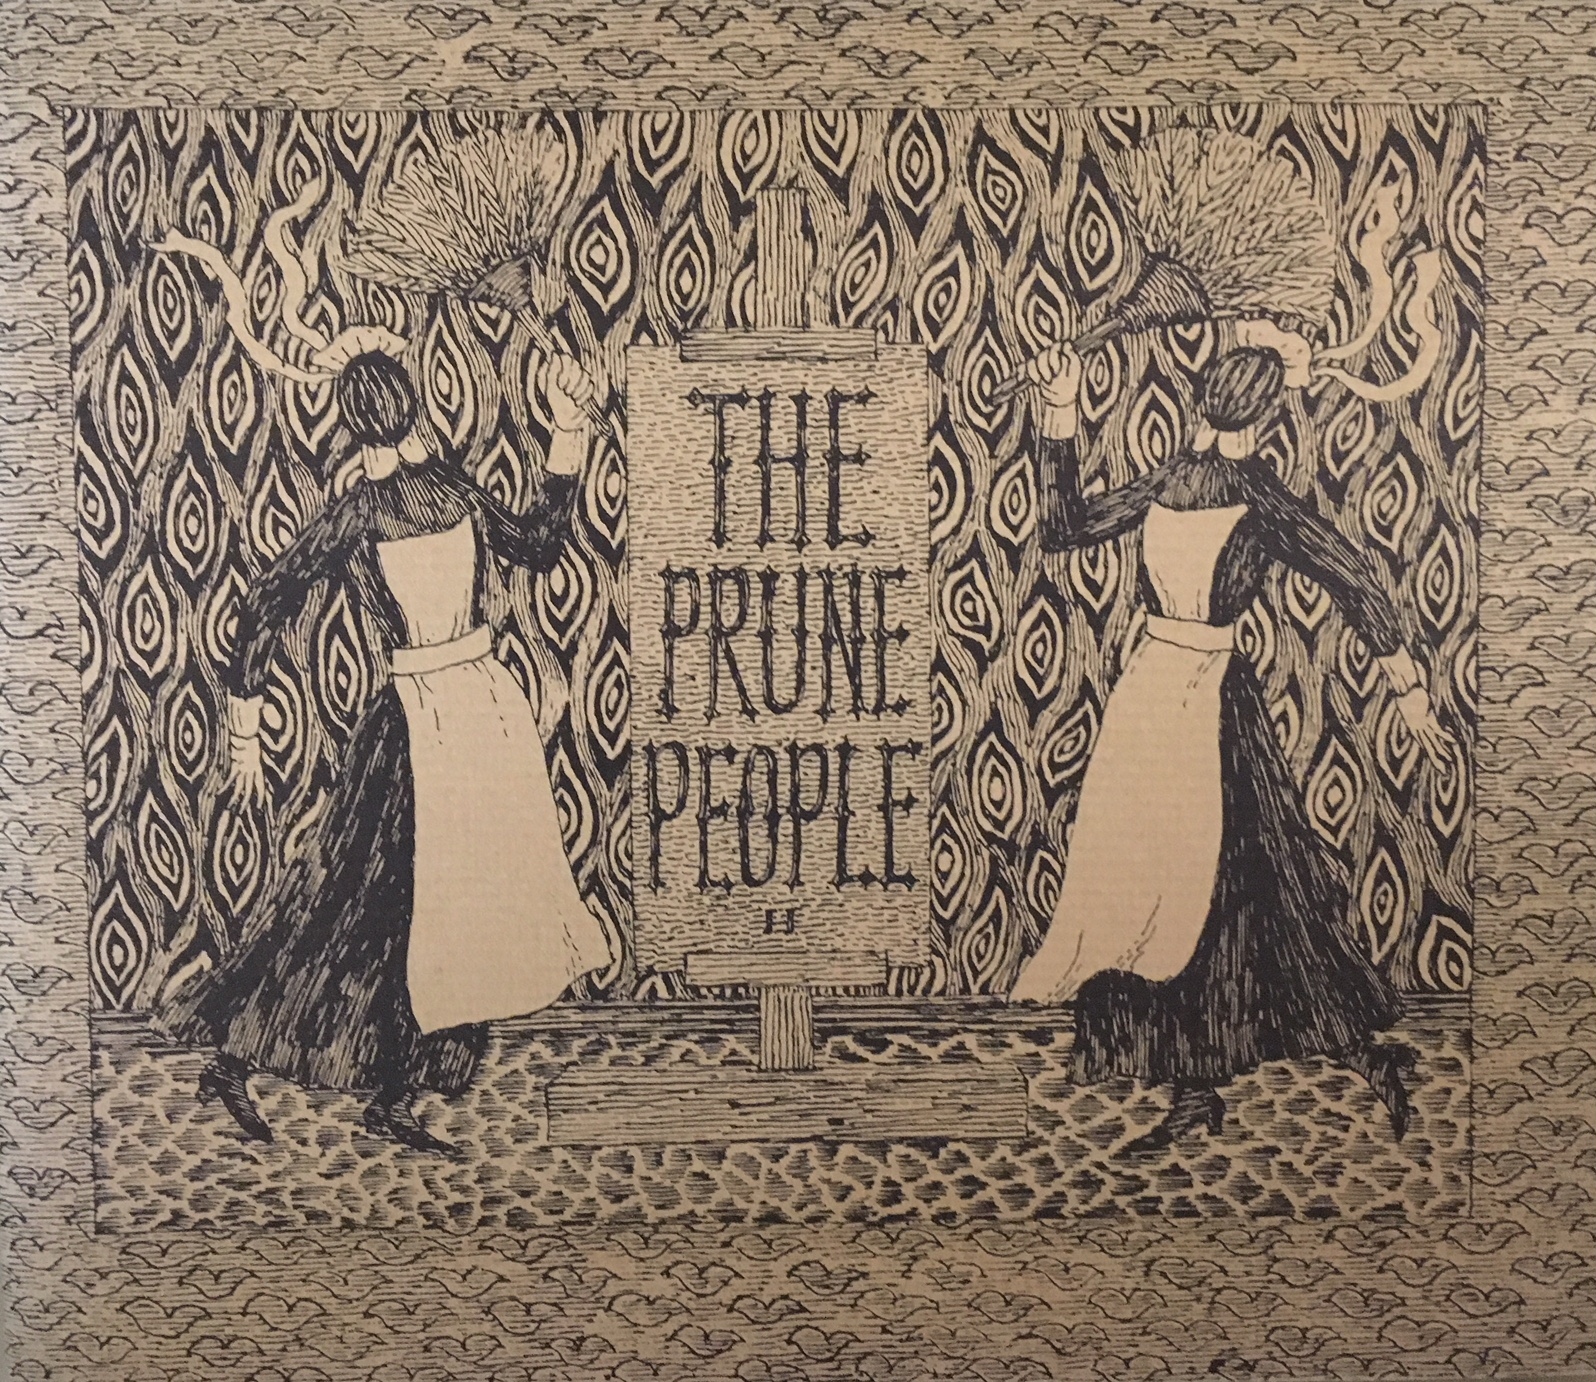 The Prune People